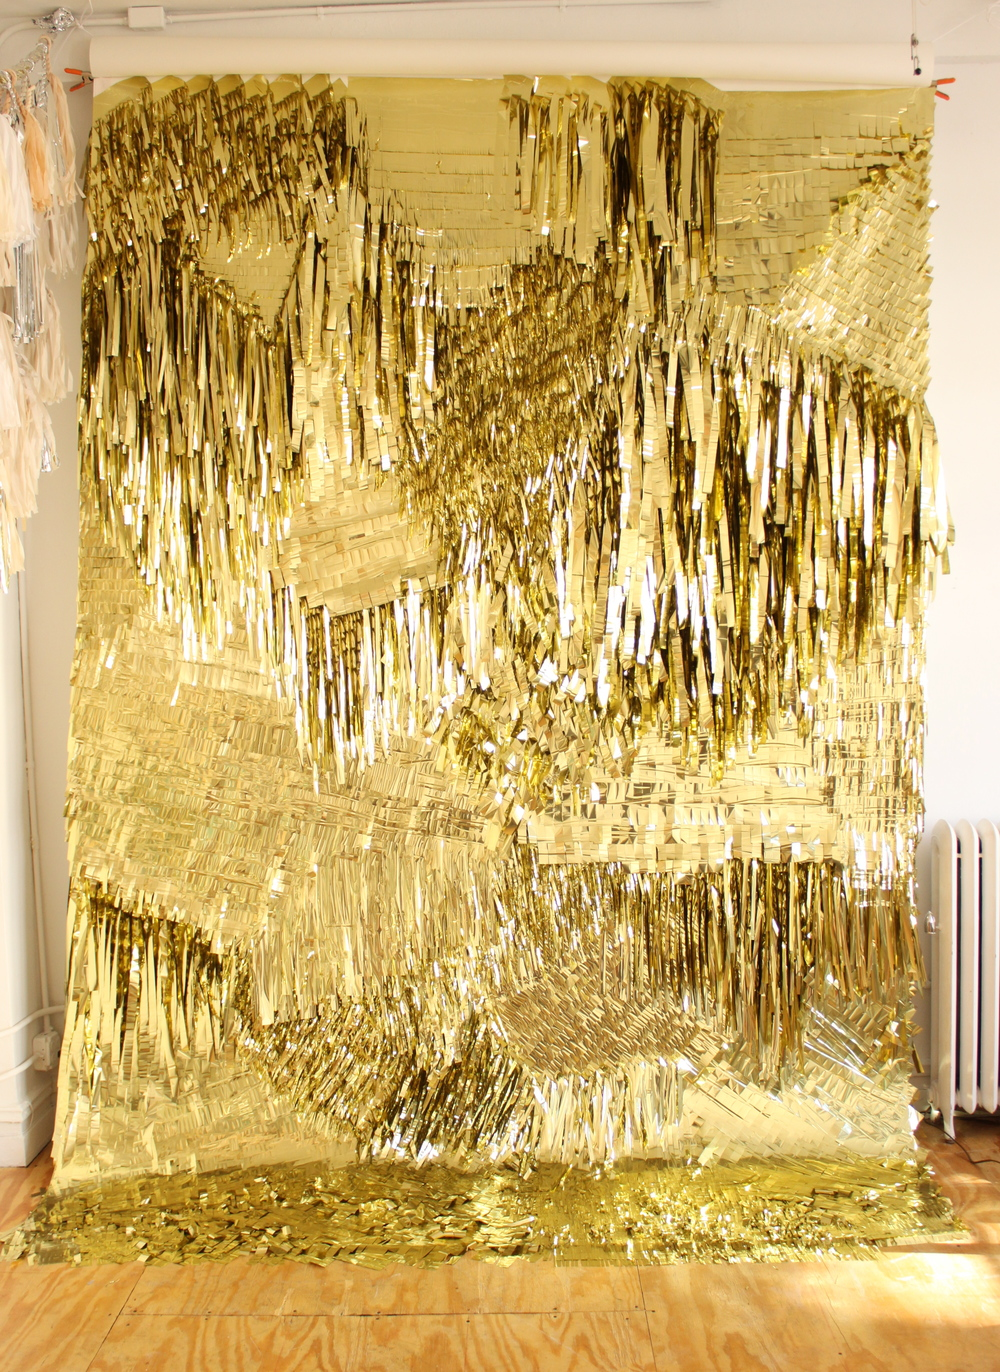 Gold Wall, 2010 CONFETTISYSTEM, Metallic foil, canvas Photo: CONFETTISYSTEM